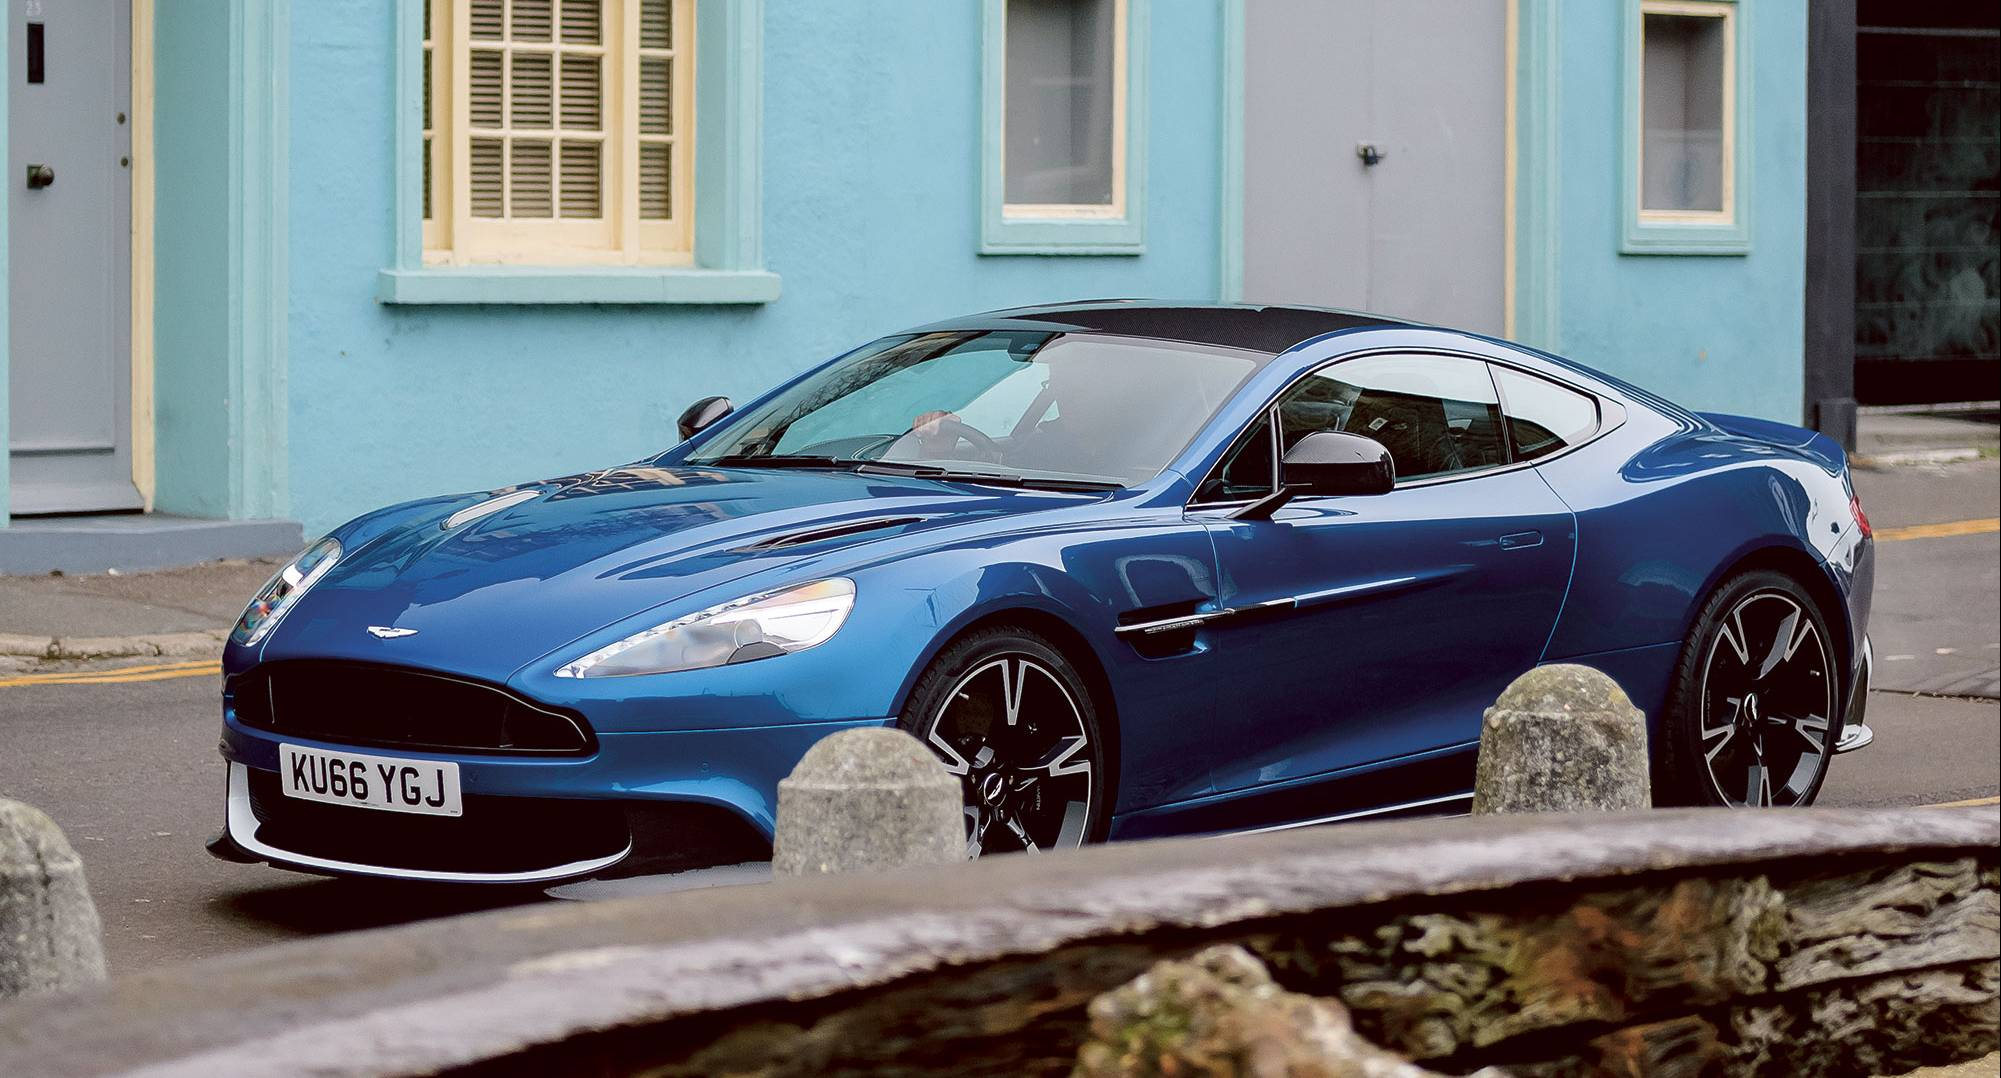 driving the aston martin vanquish s in the uk's cinque ports